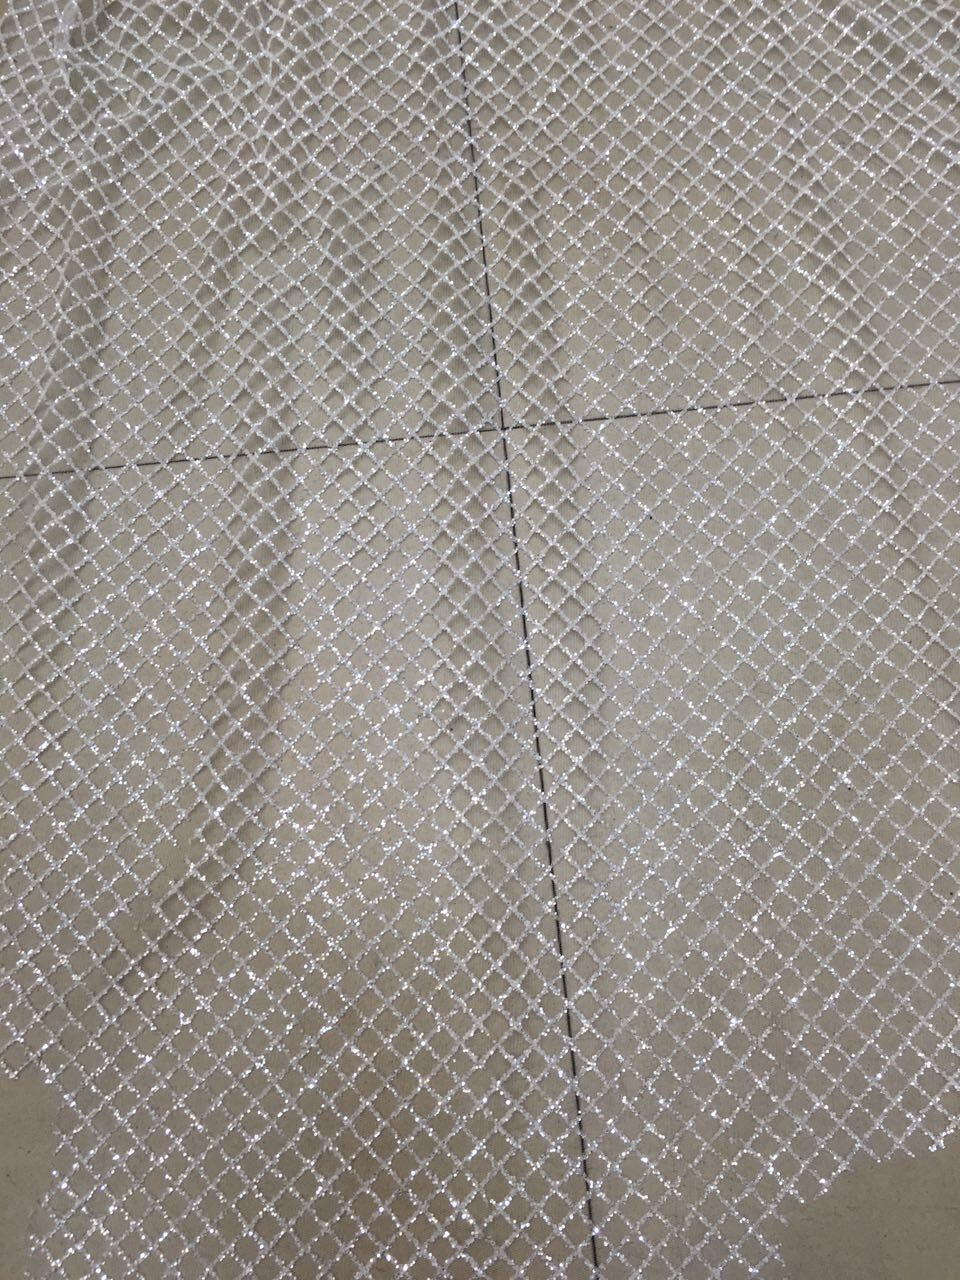 New arrival white french net lace fabric with glued glitter hot sale african tulle lace fabric